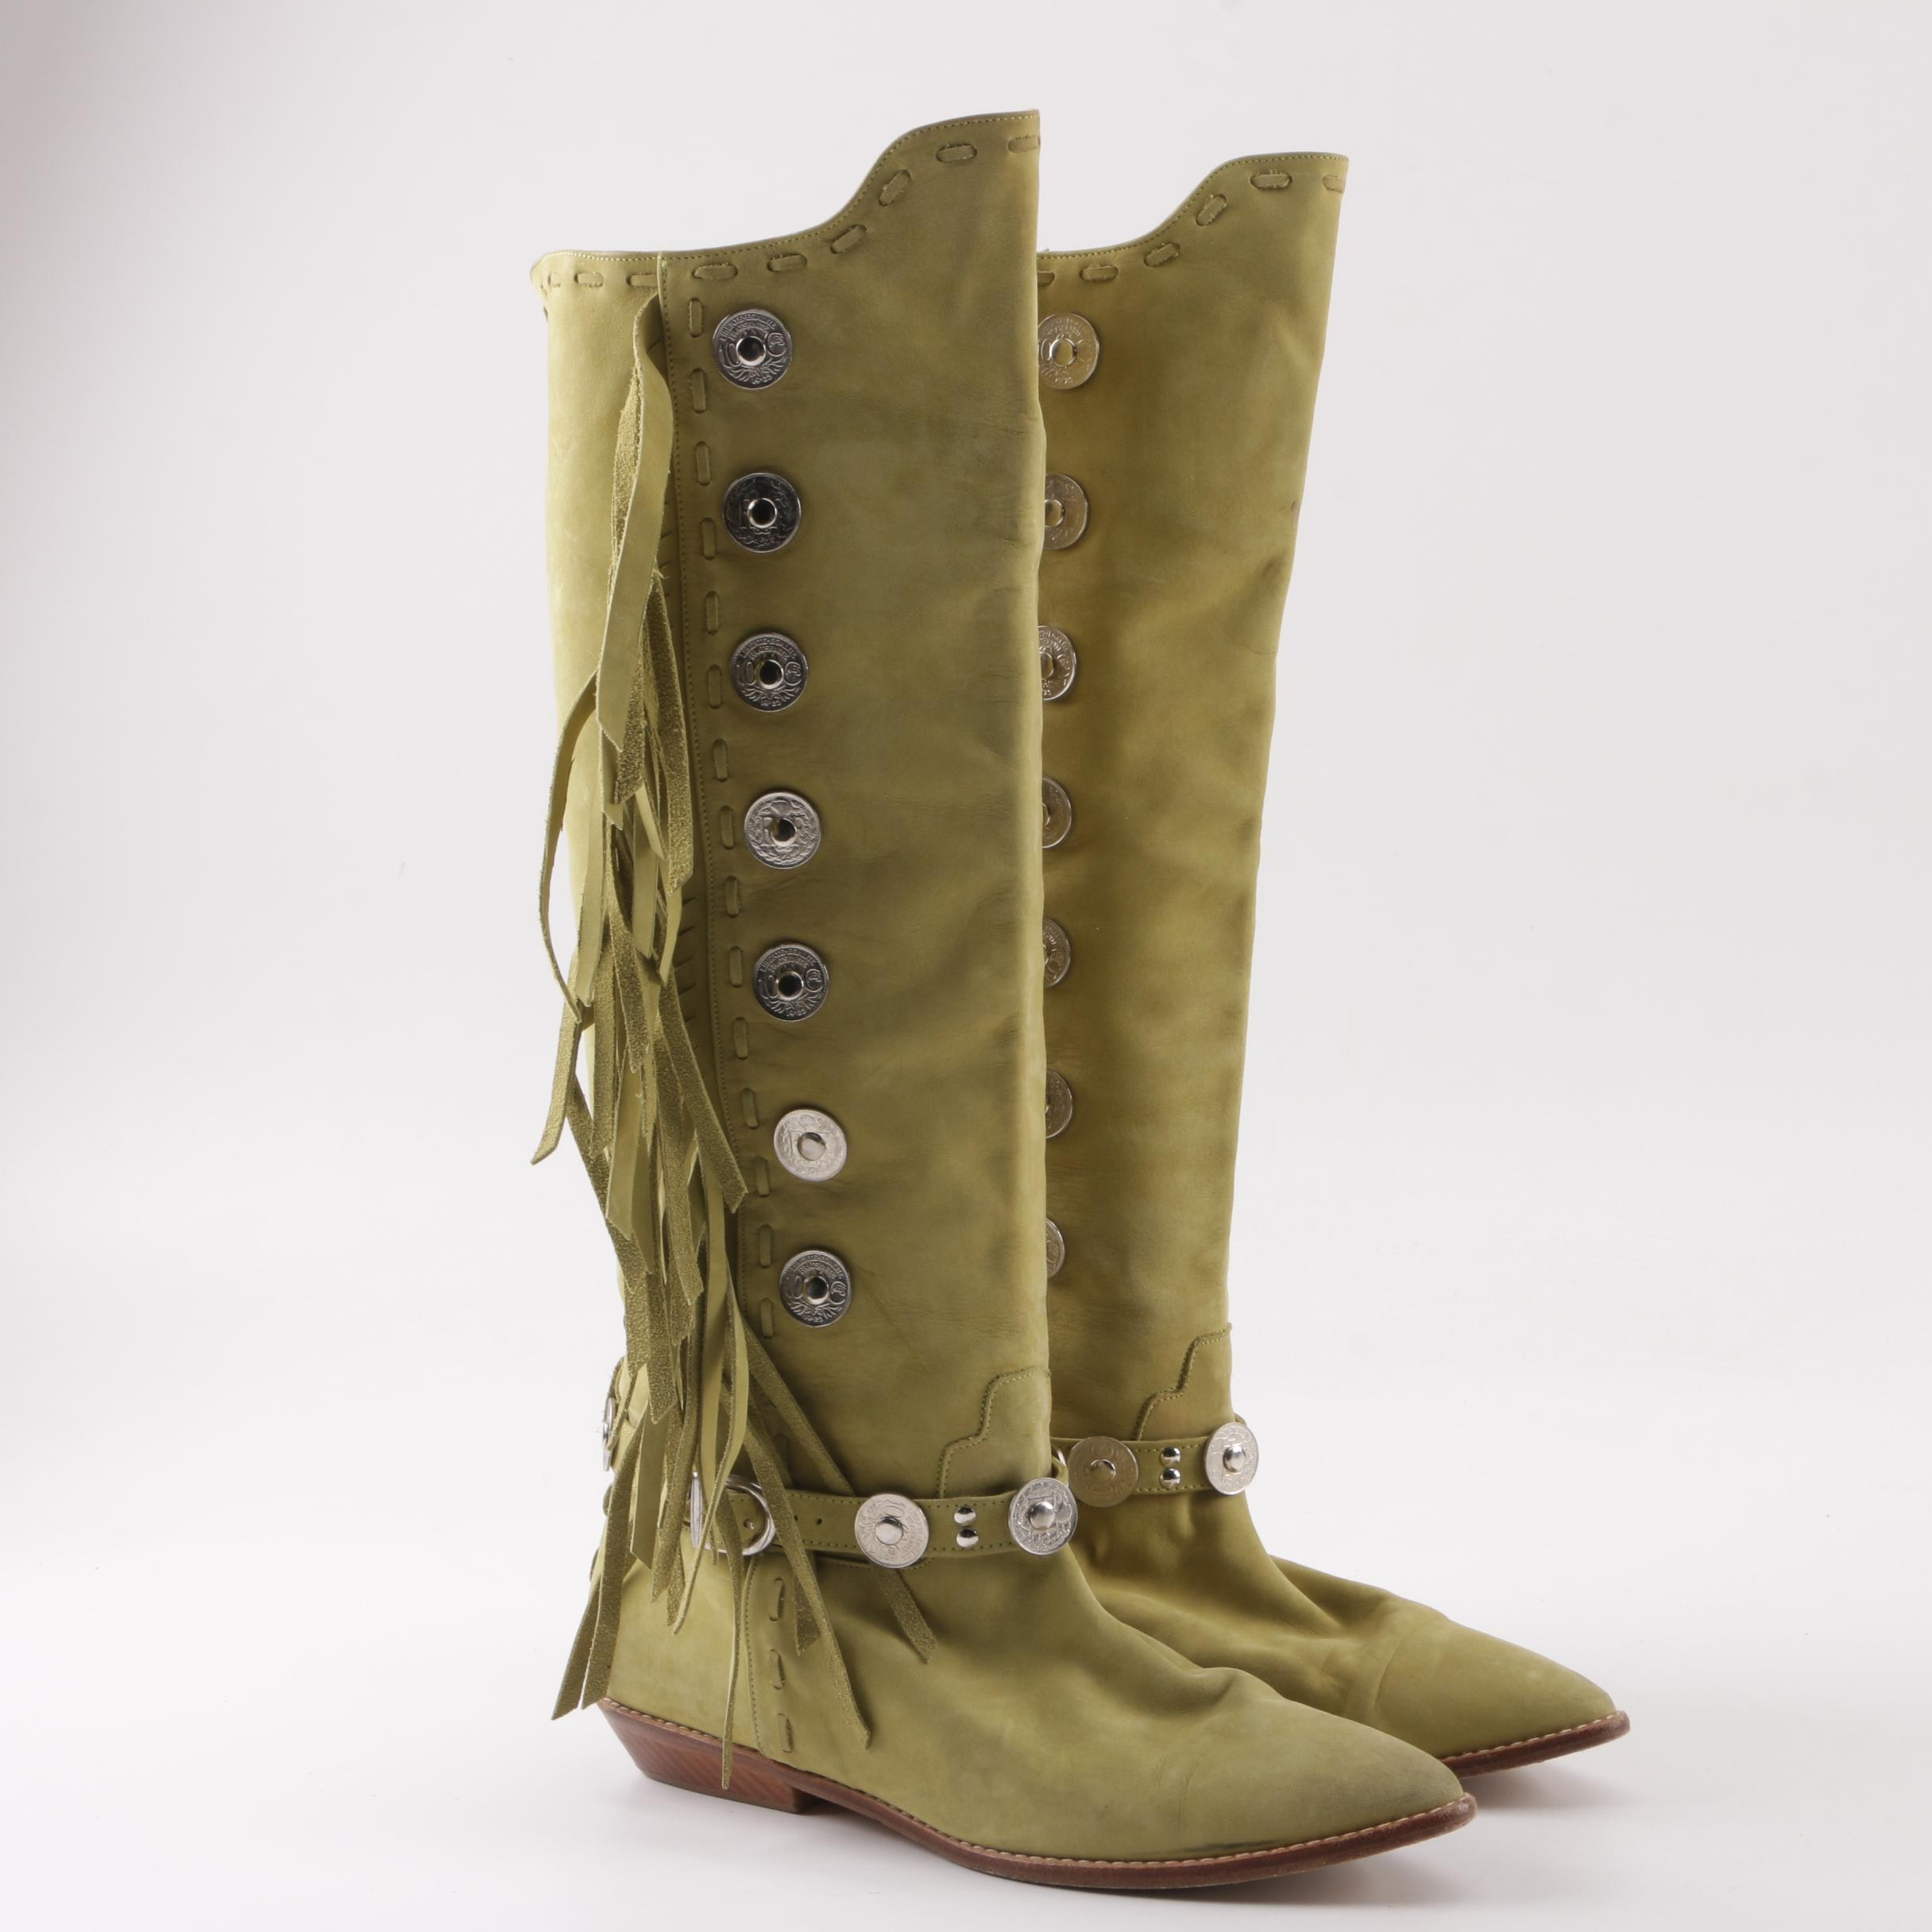 Vintage Donald J Pliner Leather Fringed Western Boots with Coin Accents